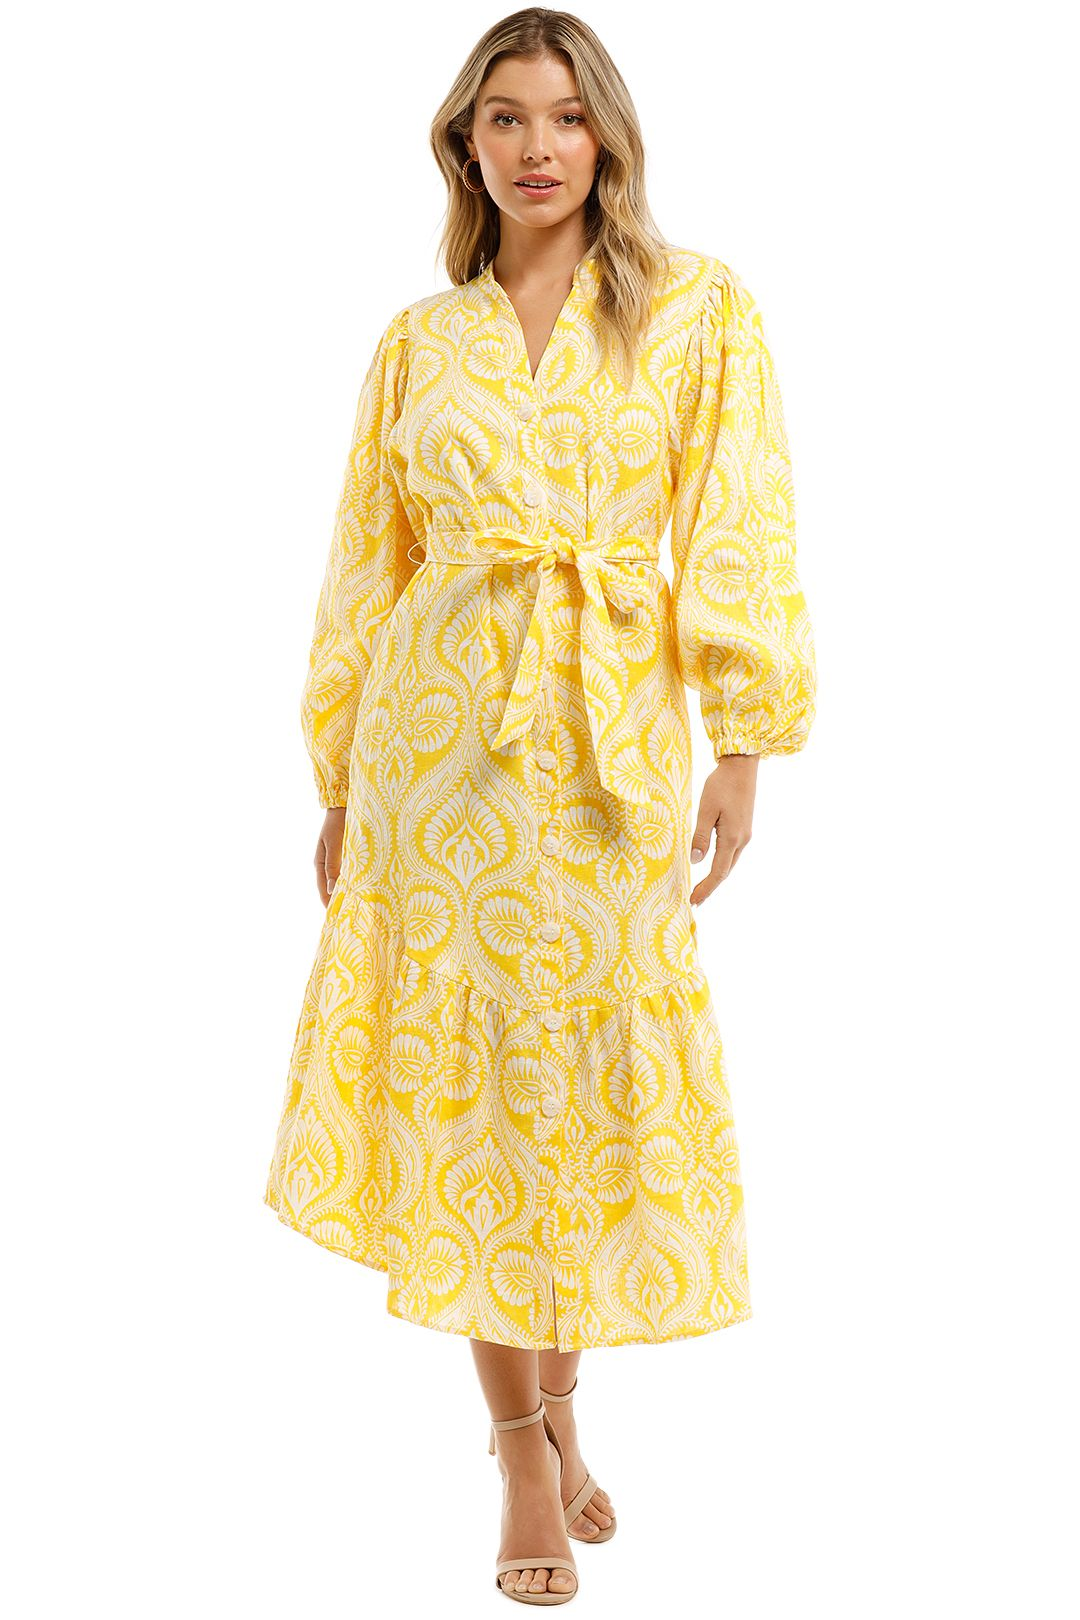 Country-Road-Print-Organically-Grown-Linen-Maxi-Dress-Marigold-Front